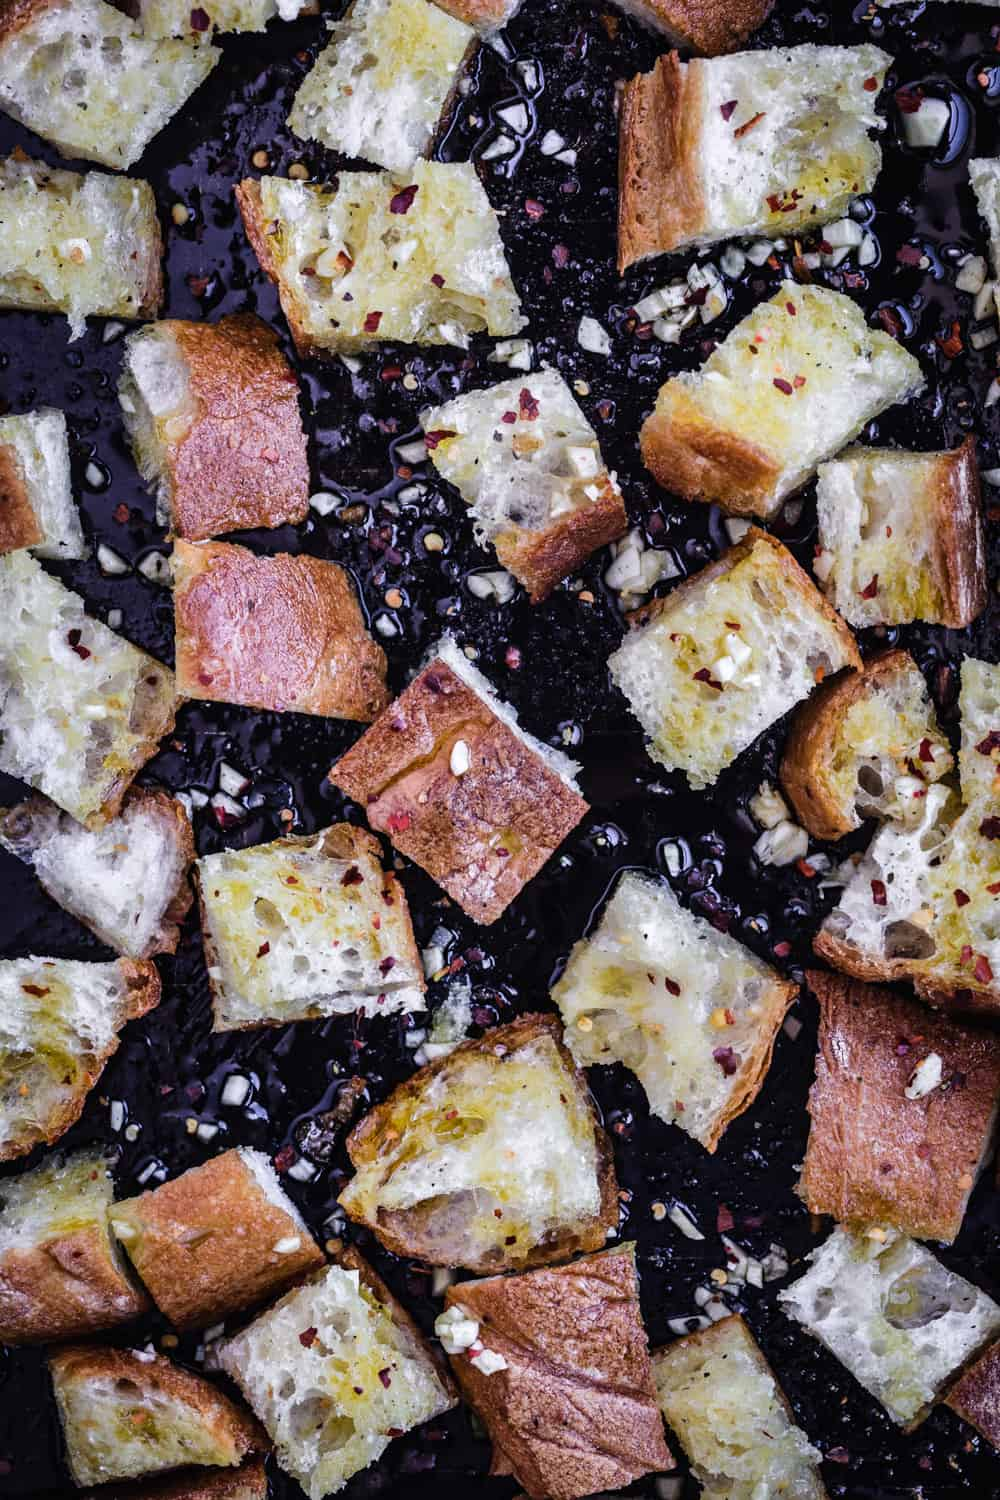 Croutons in the making! Bread is tossed with olive oil, garlic, chili flakes, salt, pepper and ready for the oven.